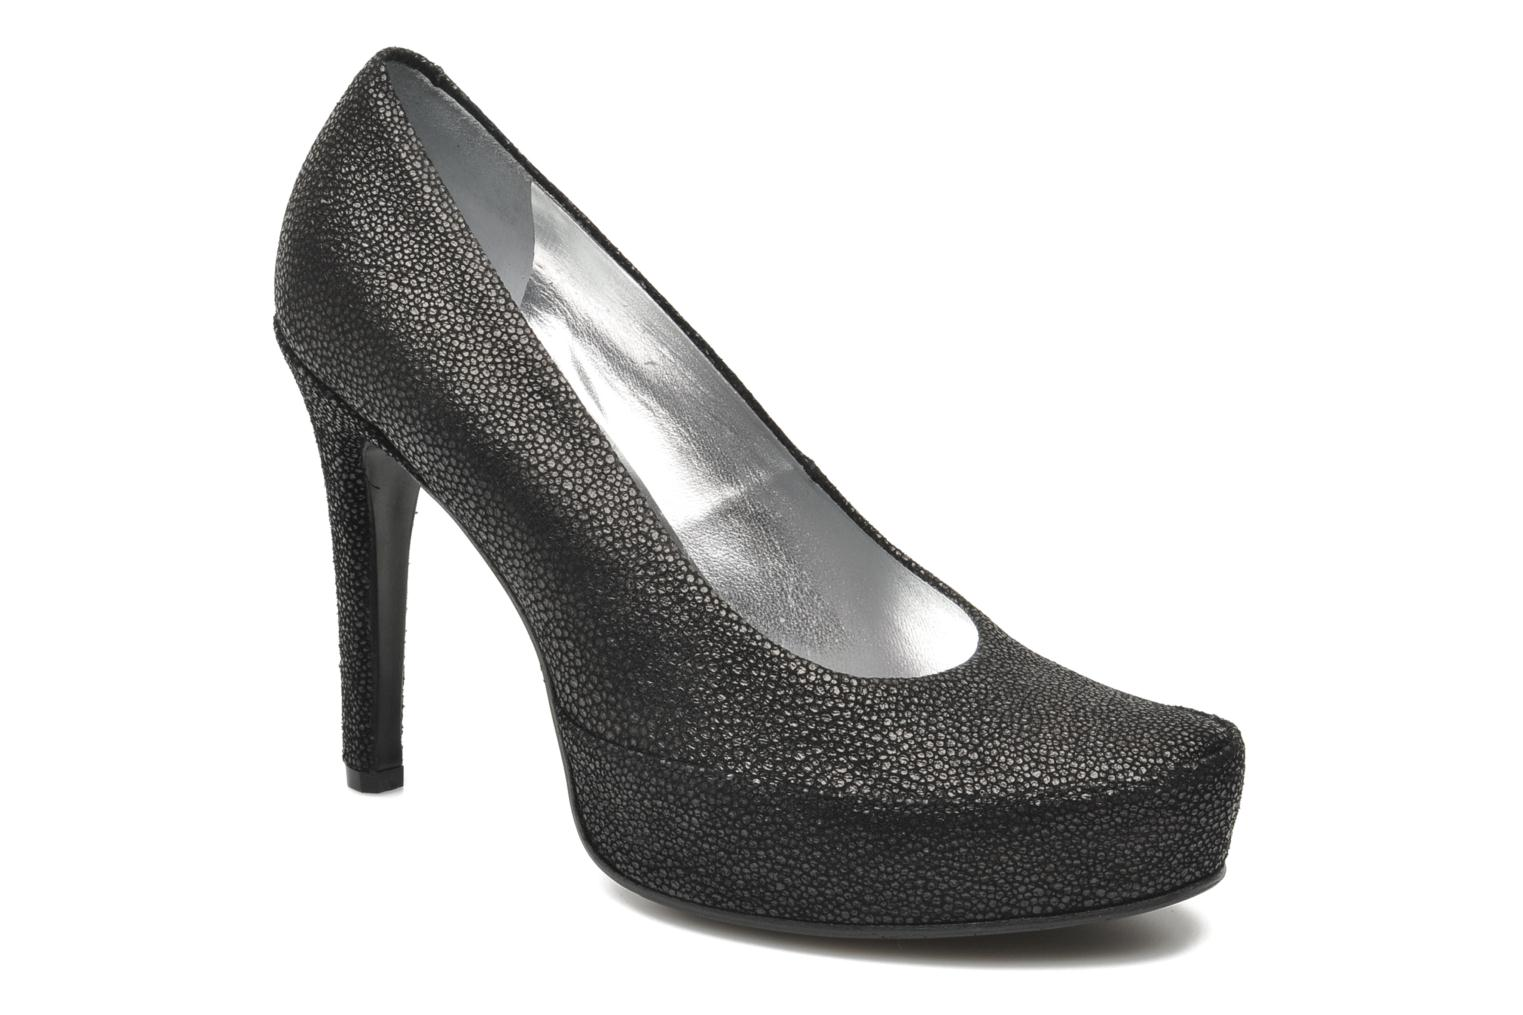 Janice 7 pumps Razza Noir